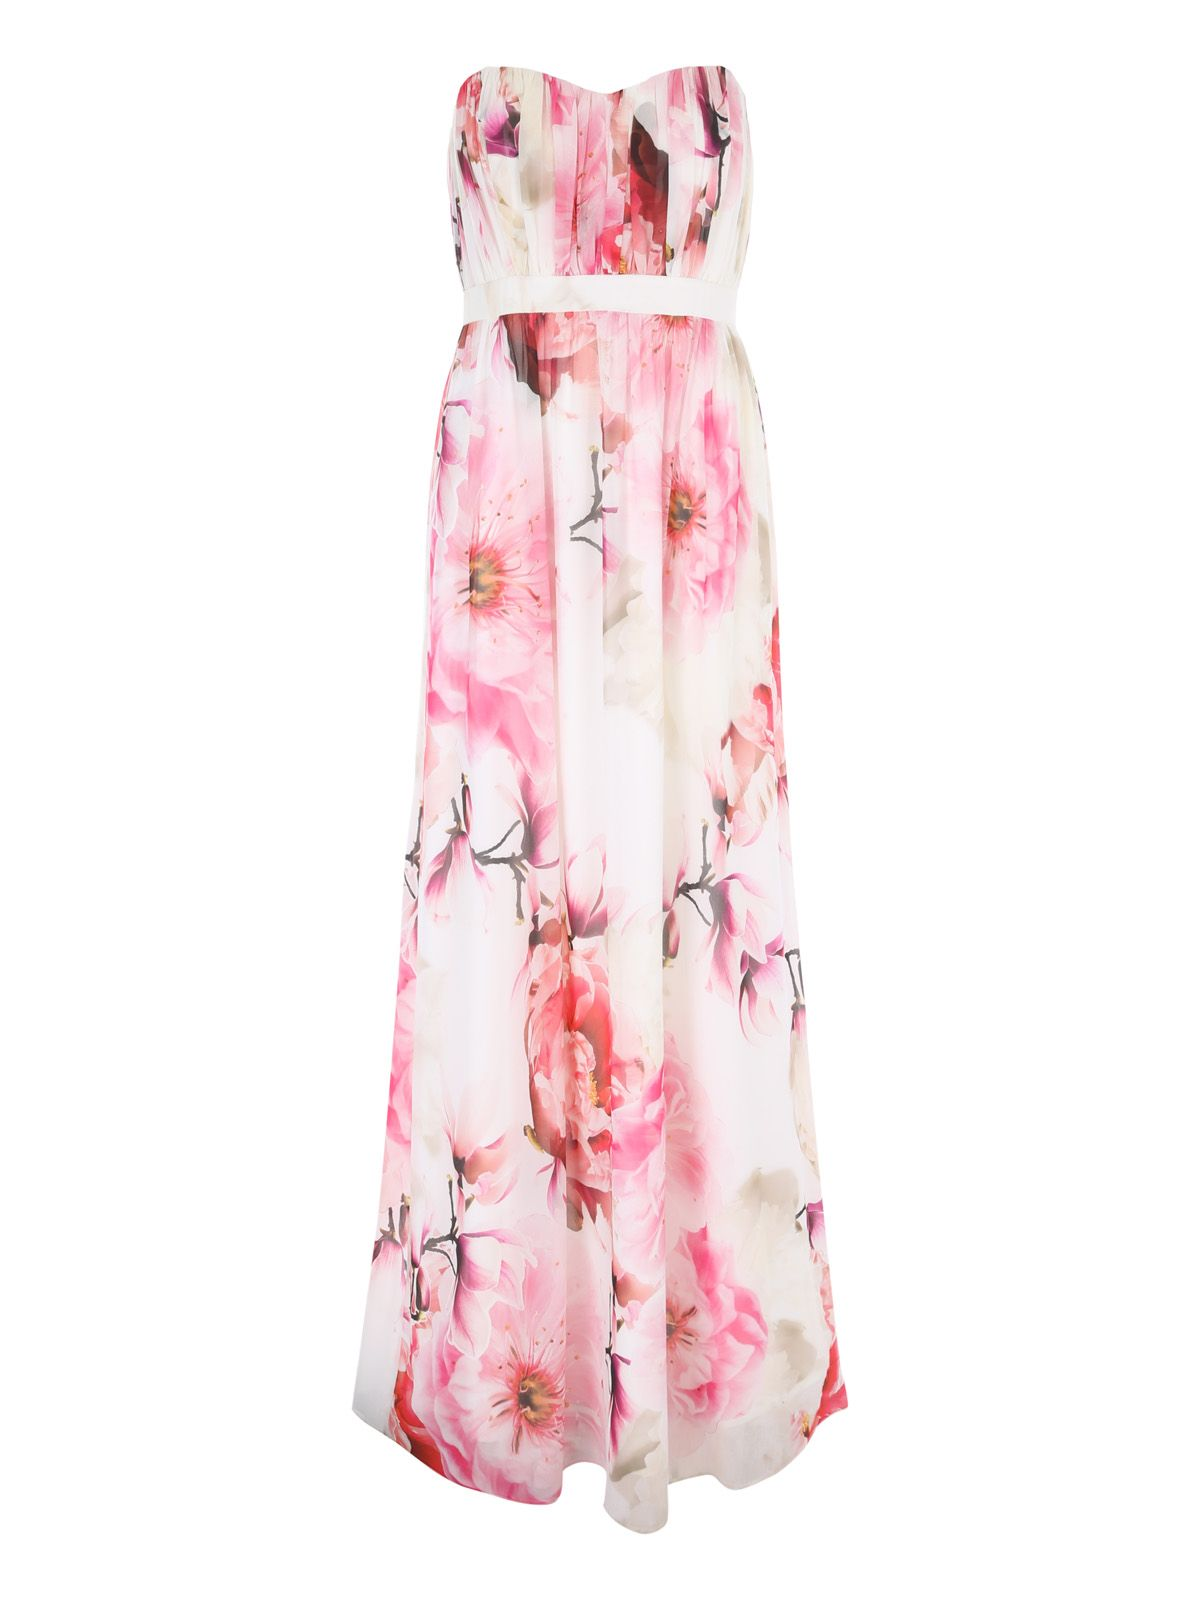 Jane Norman Floral Maxi Dress with Detachable Straps, Multi-Coloured